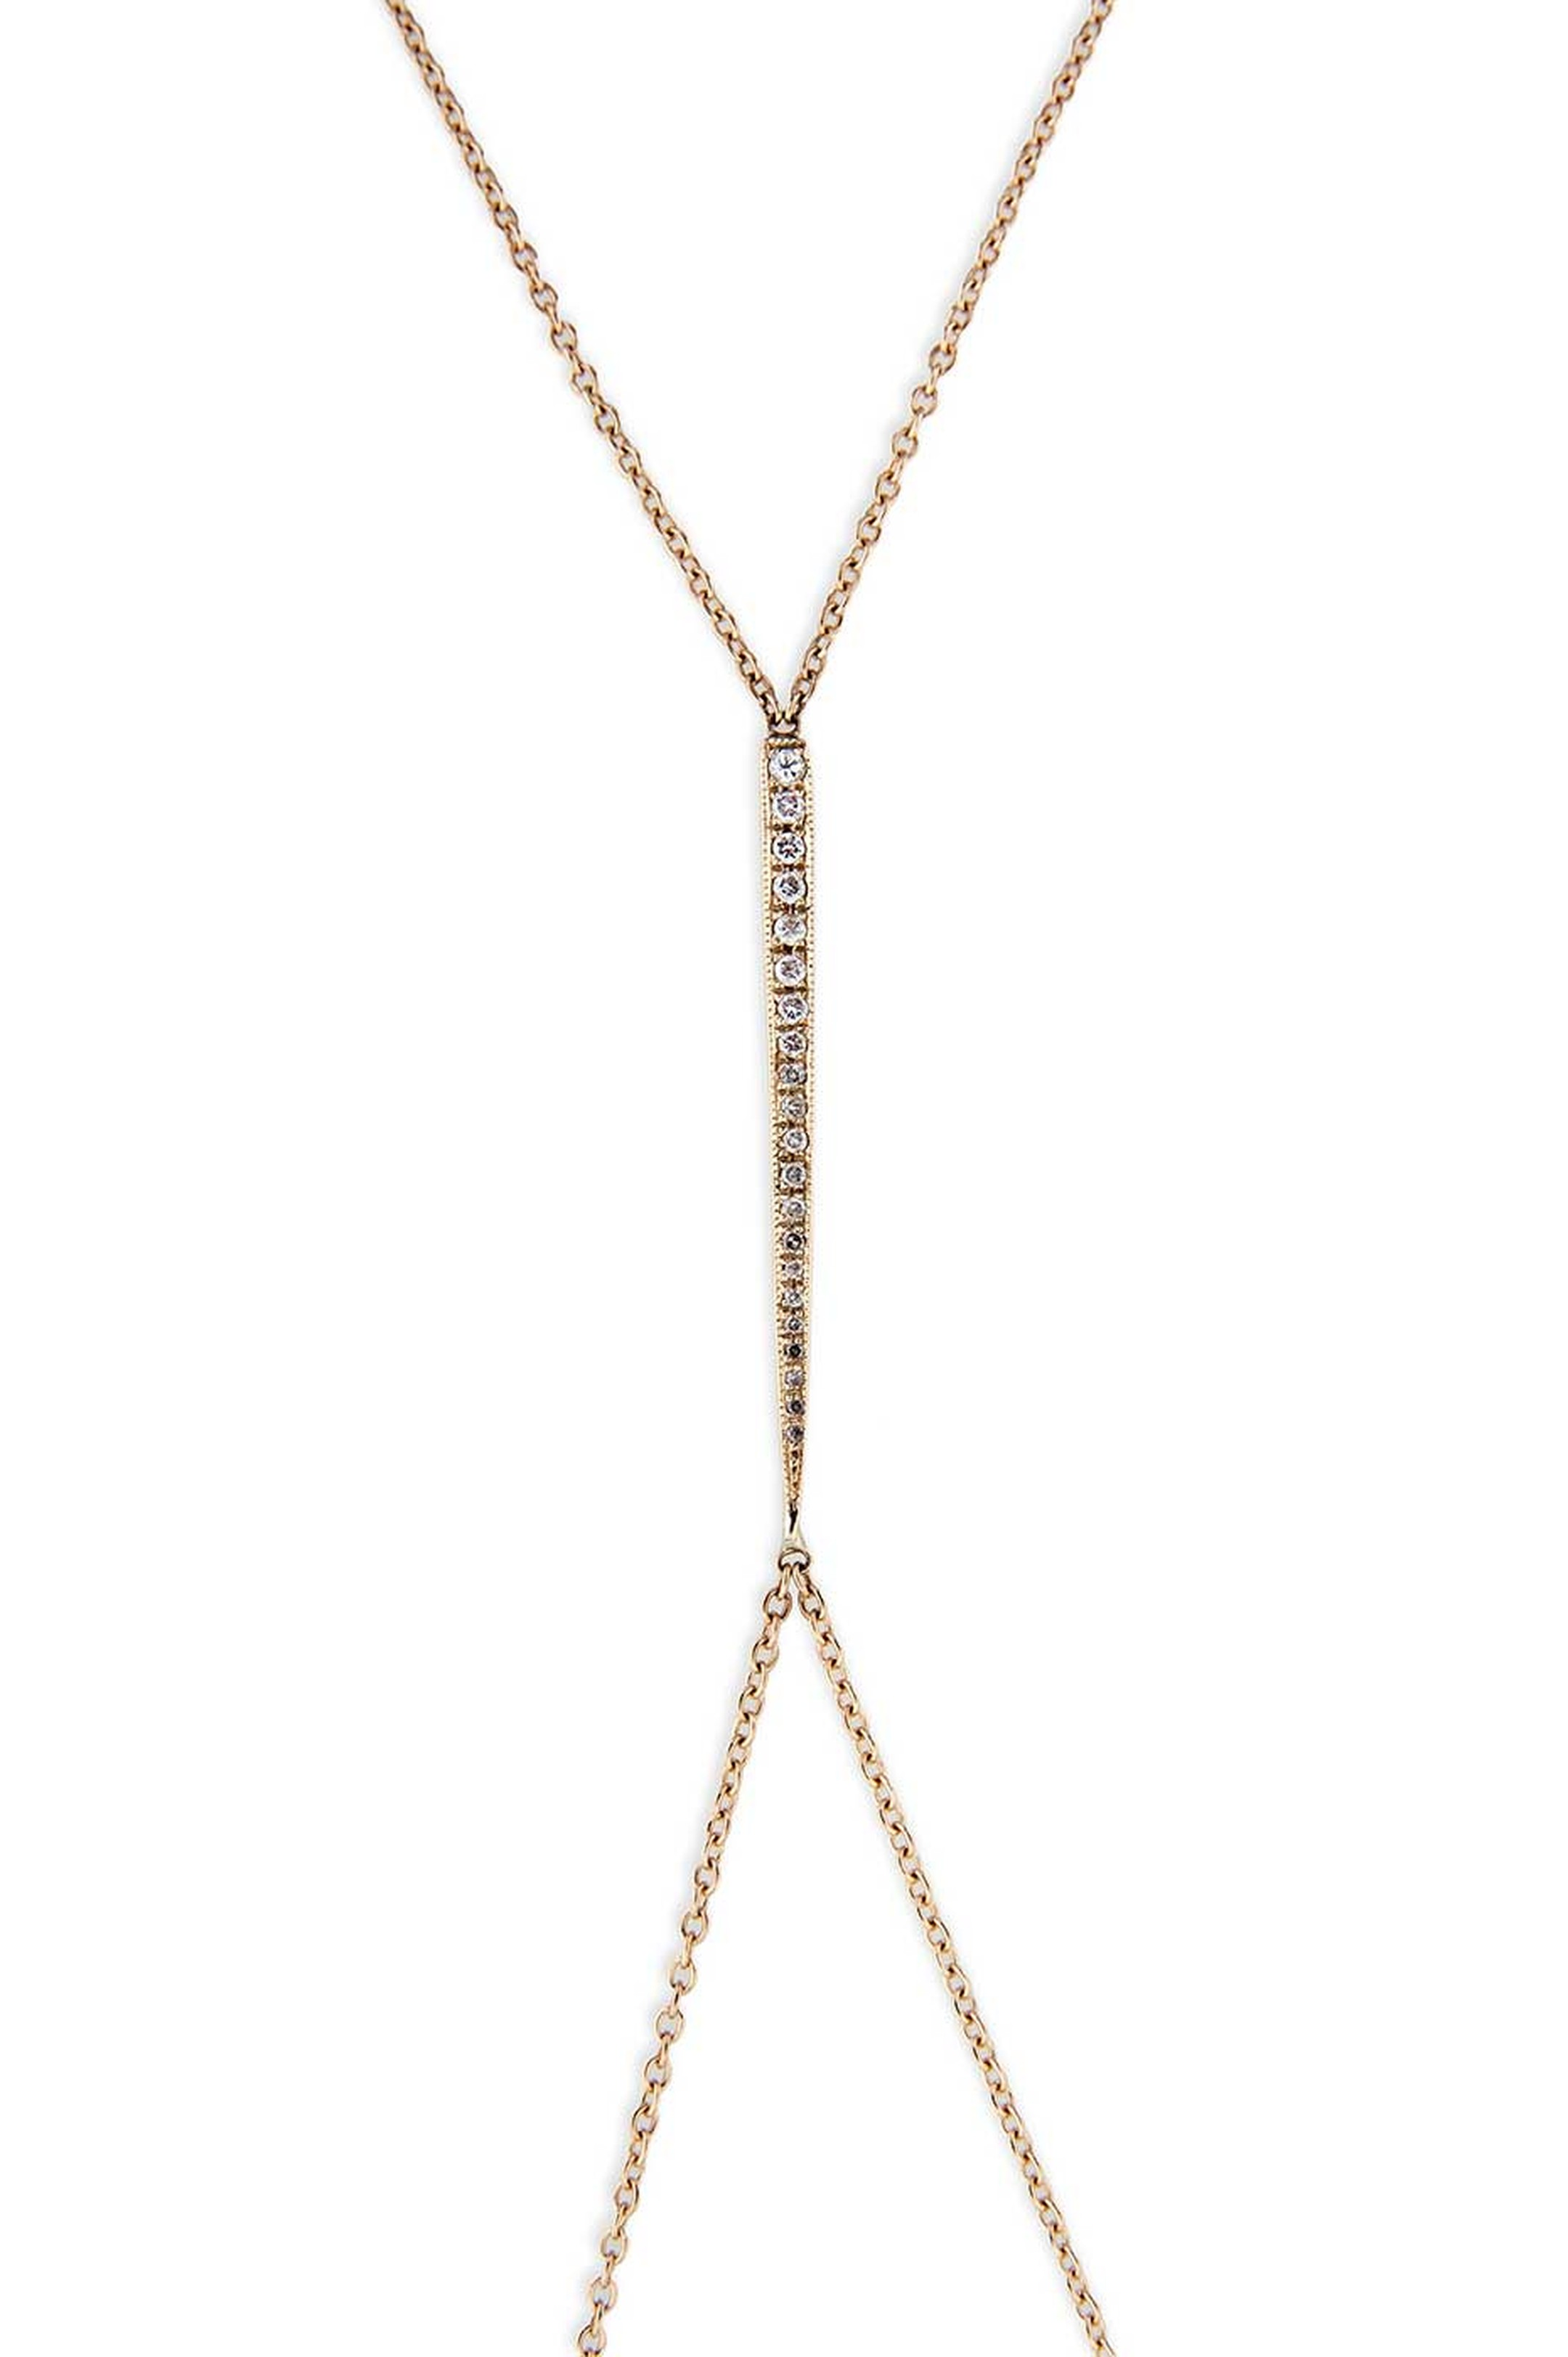 LA-based designer Jacquie Aiche also has a range of body jewels that she will be unveiling at the Couture Show Las Vegas, including this yellow gold pavé diamond Icepick design